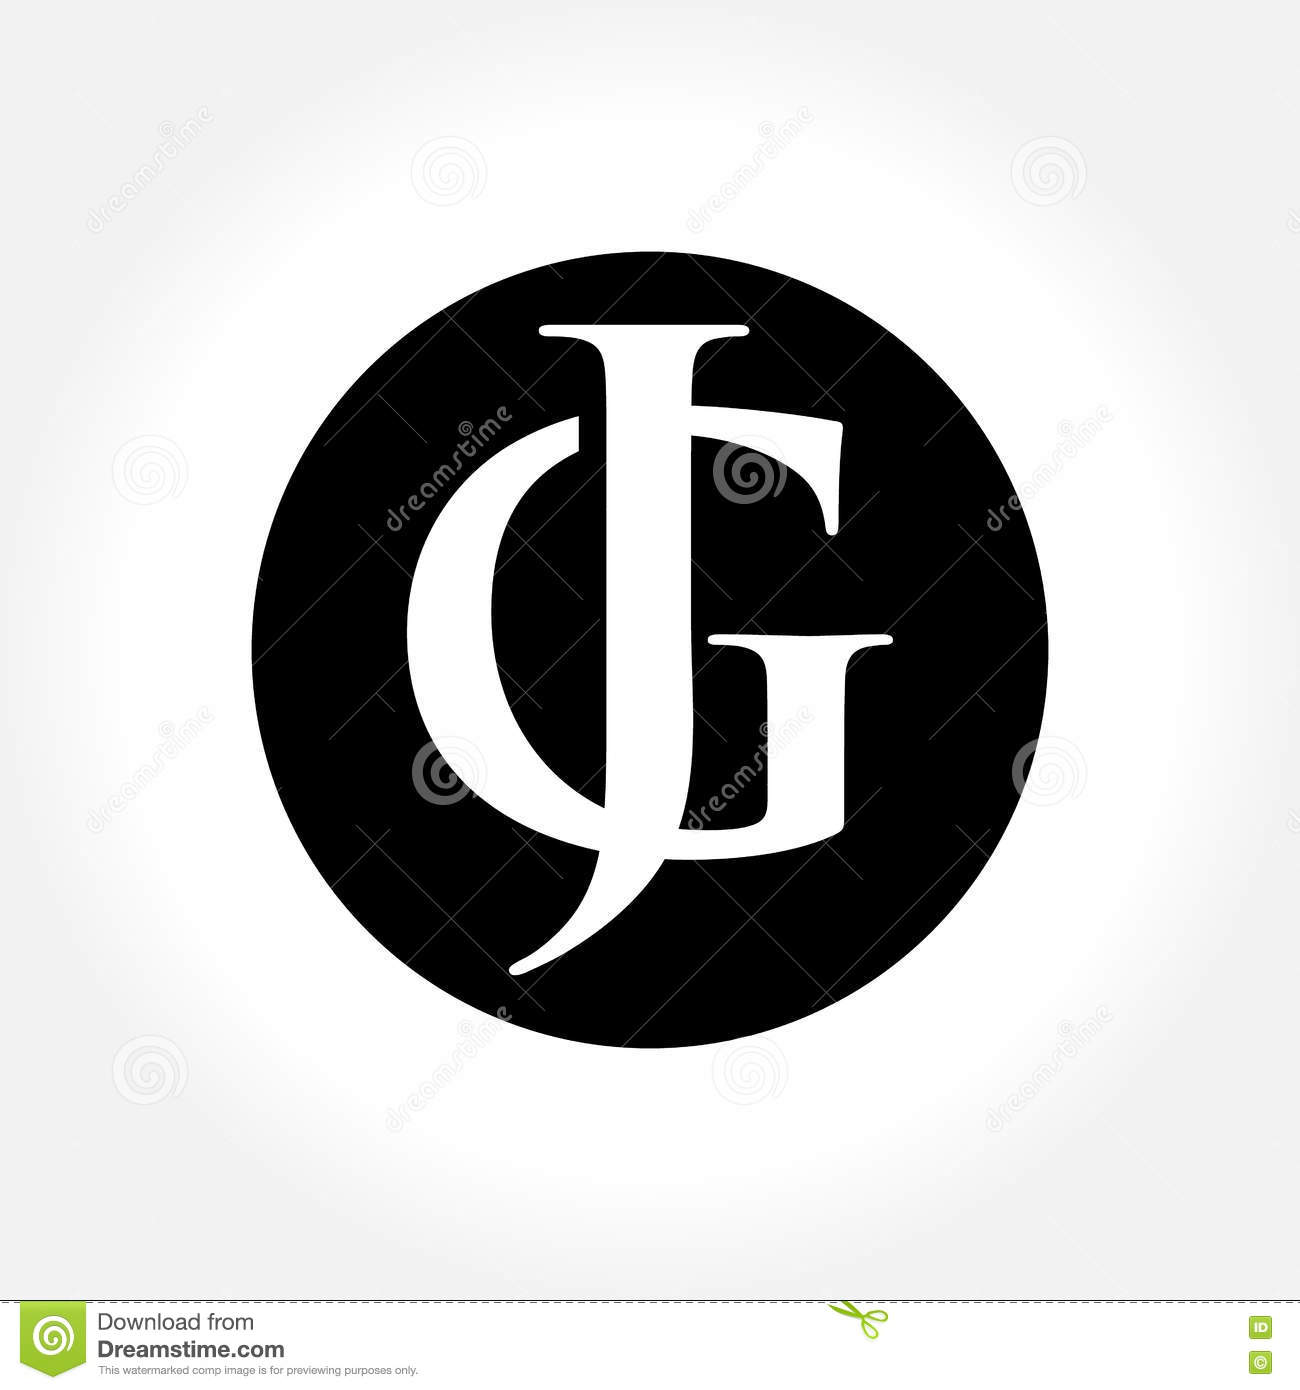 JG Initial Letters Inside Circle Monogram Logo Royalty Free Stock Photography